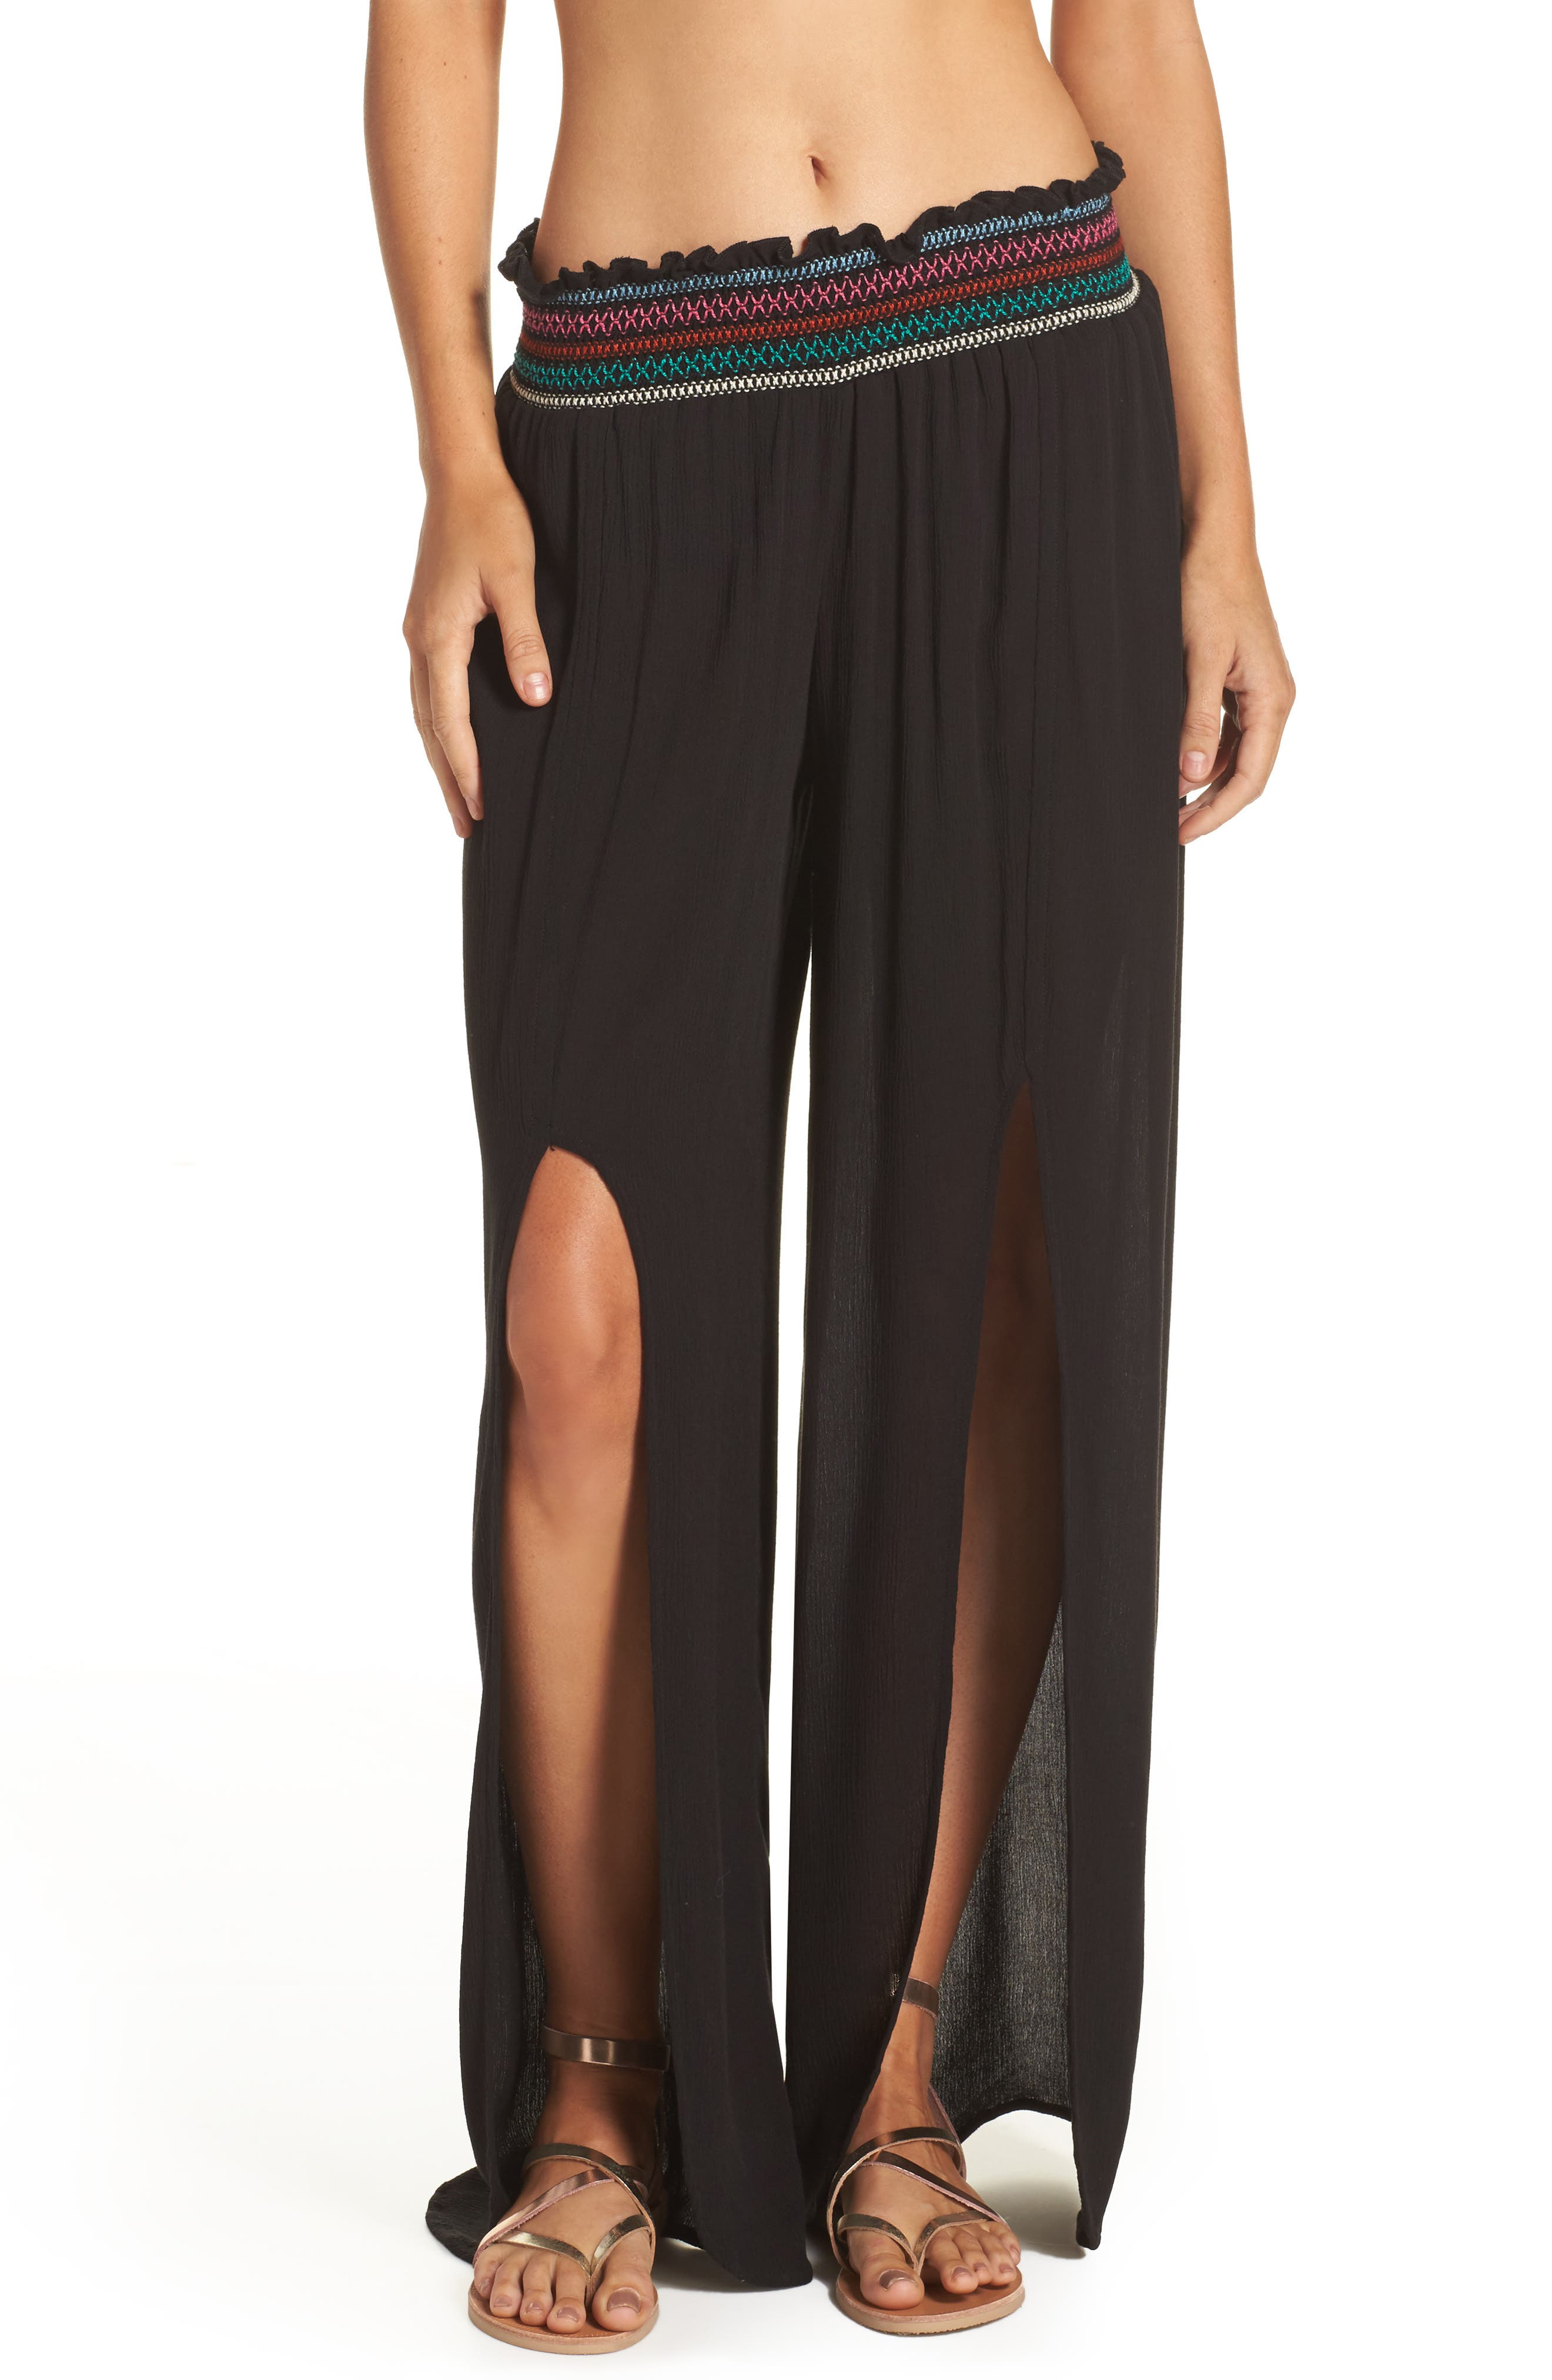 Crystal Cove Cover-Up Pants,                         Main,                         color, Black